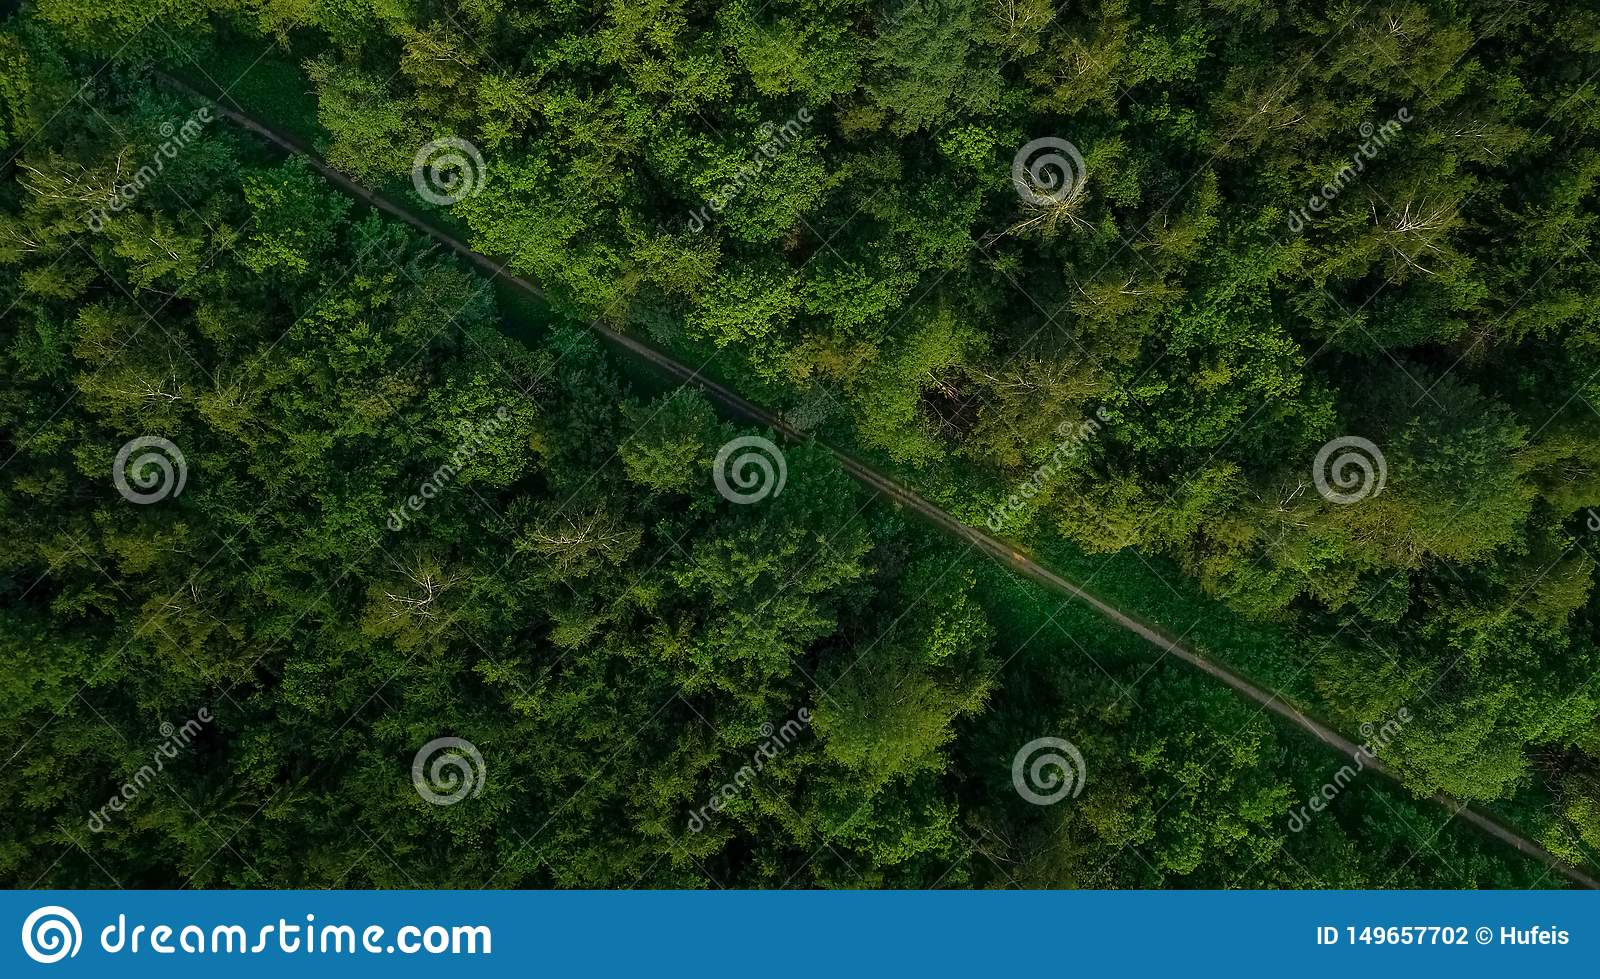 Aerial veiw of empty road in green forest. drone shot.